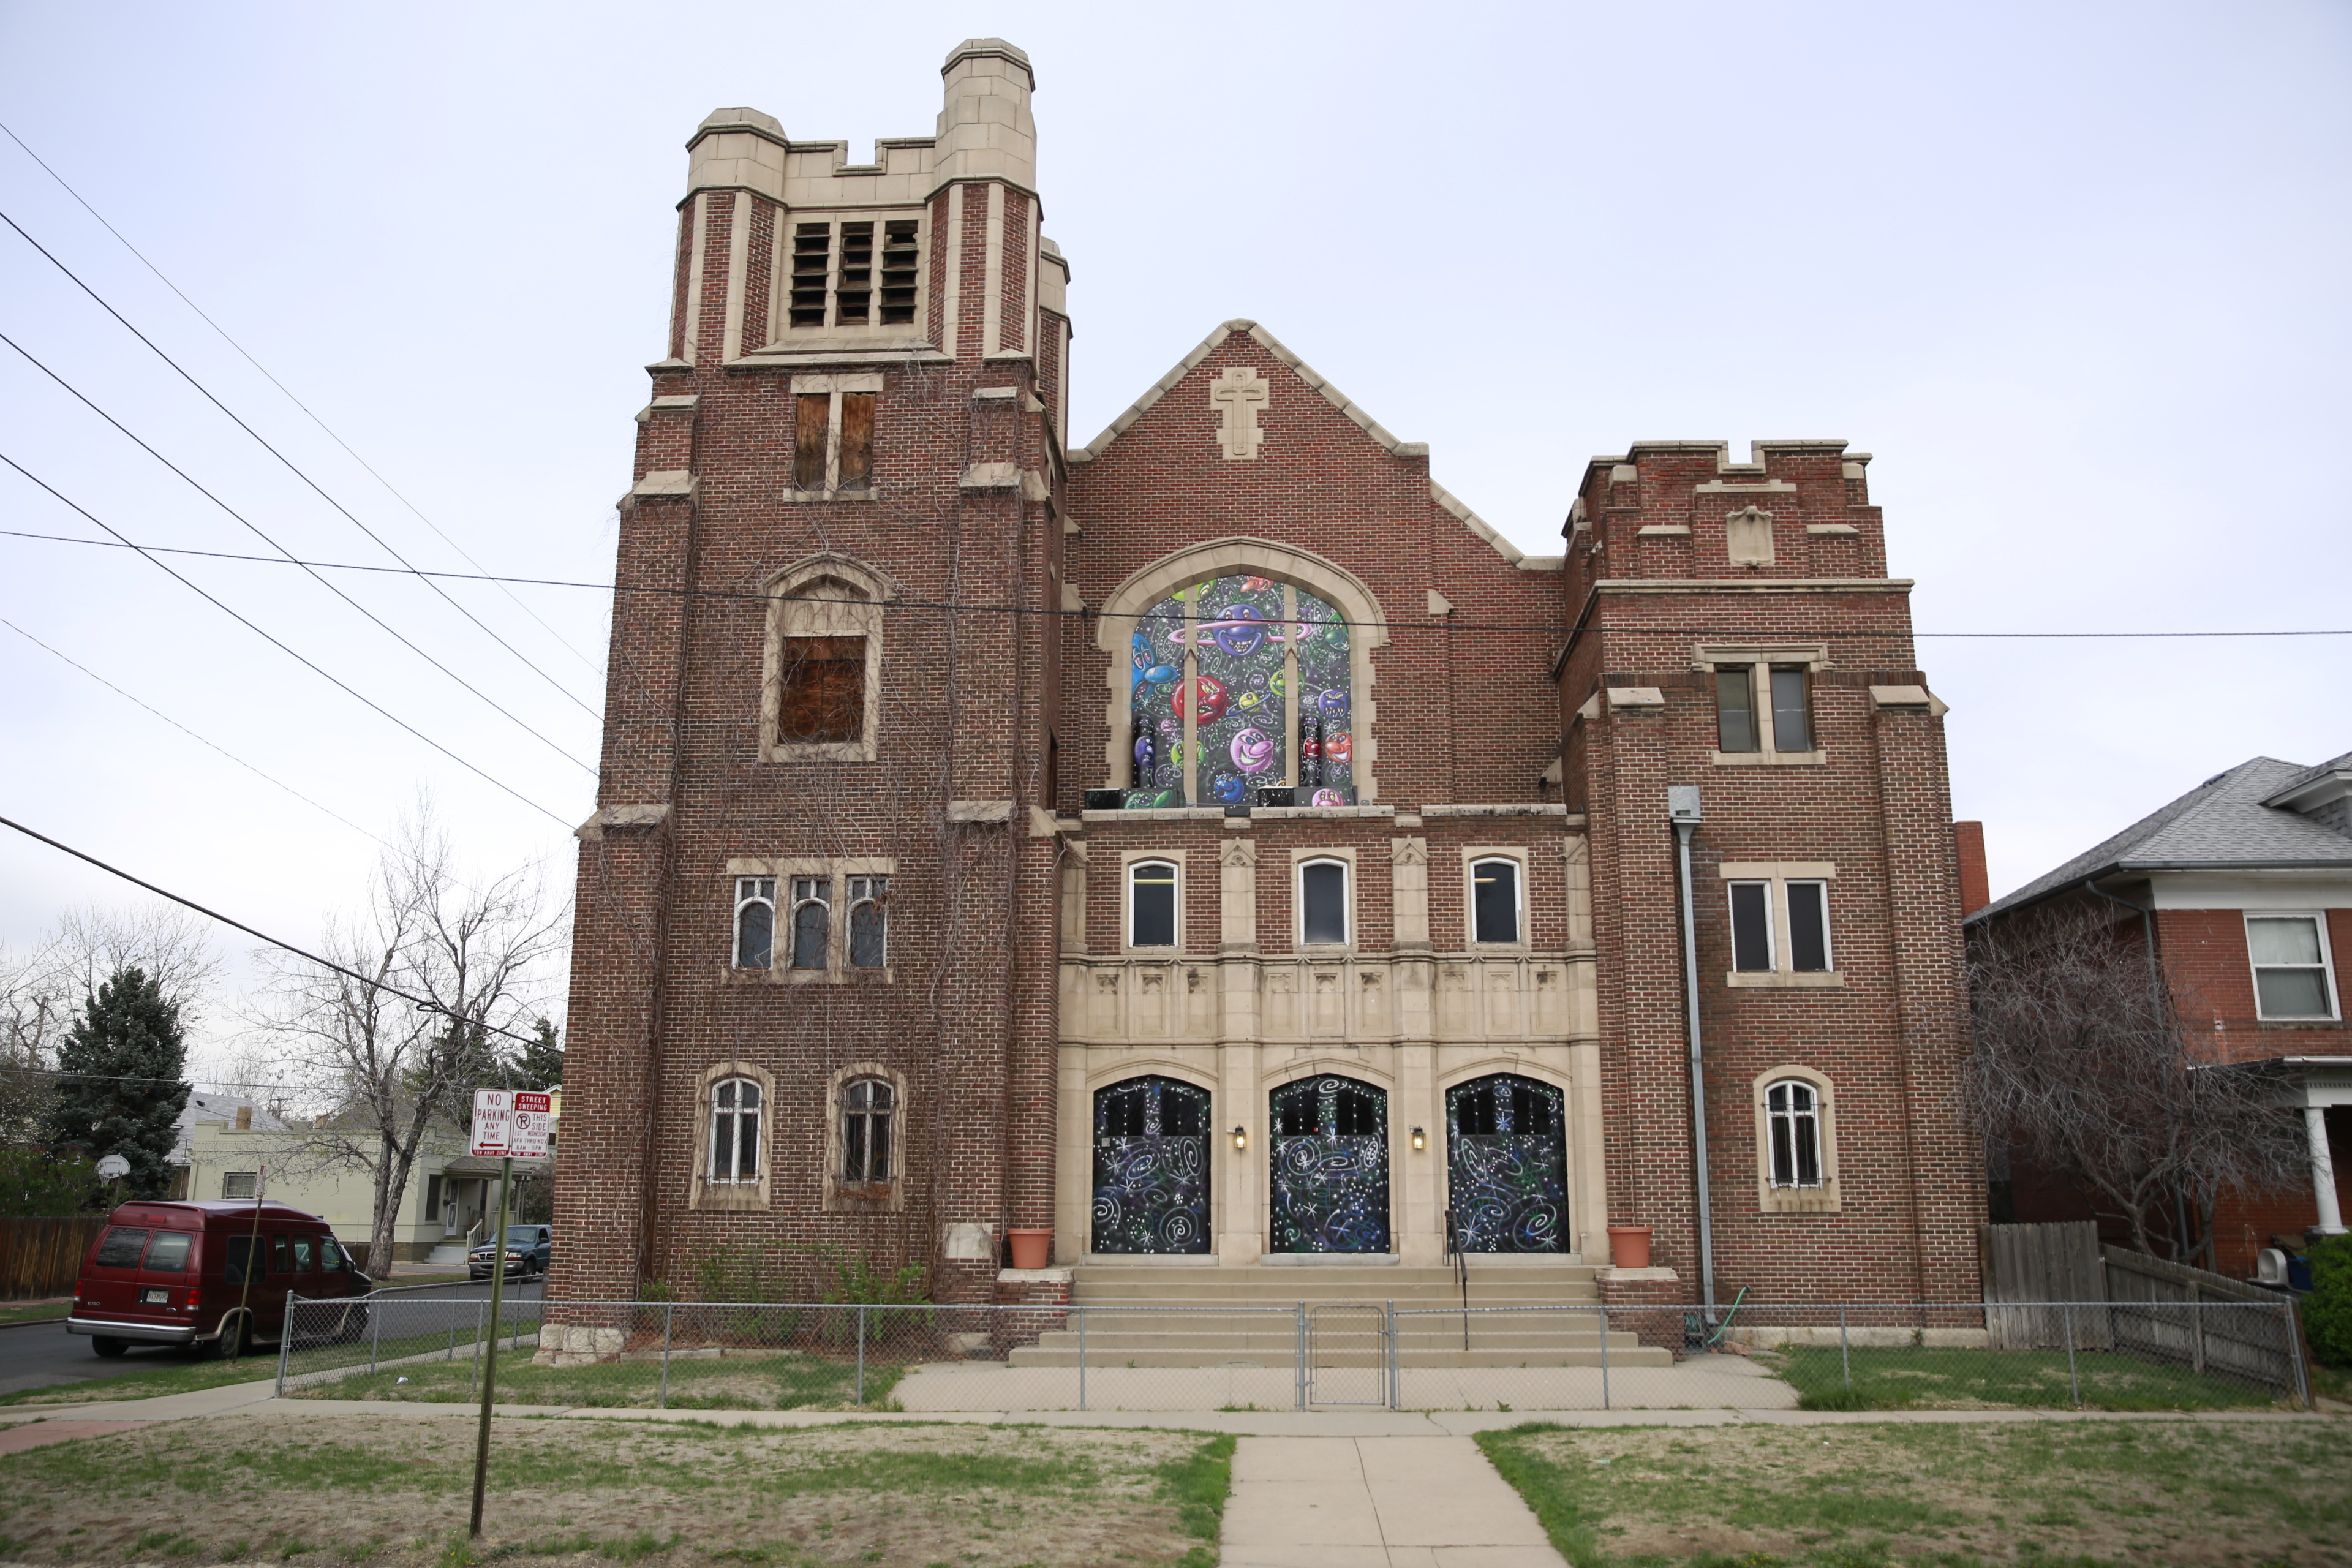 Some of us here at Inverse also grew up in Colorado and would like to note, as a matter of public service to those fortunate enough to visit, that the church is but a 10-minute walk from the South Broadway Illegal Pete's.